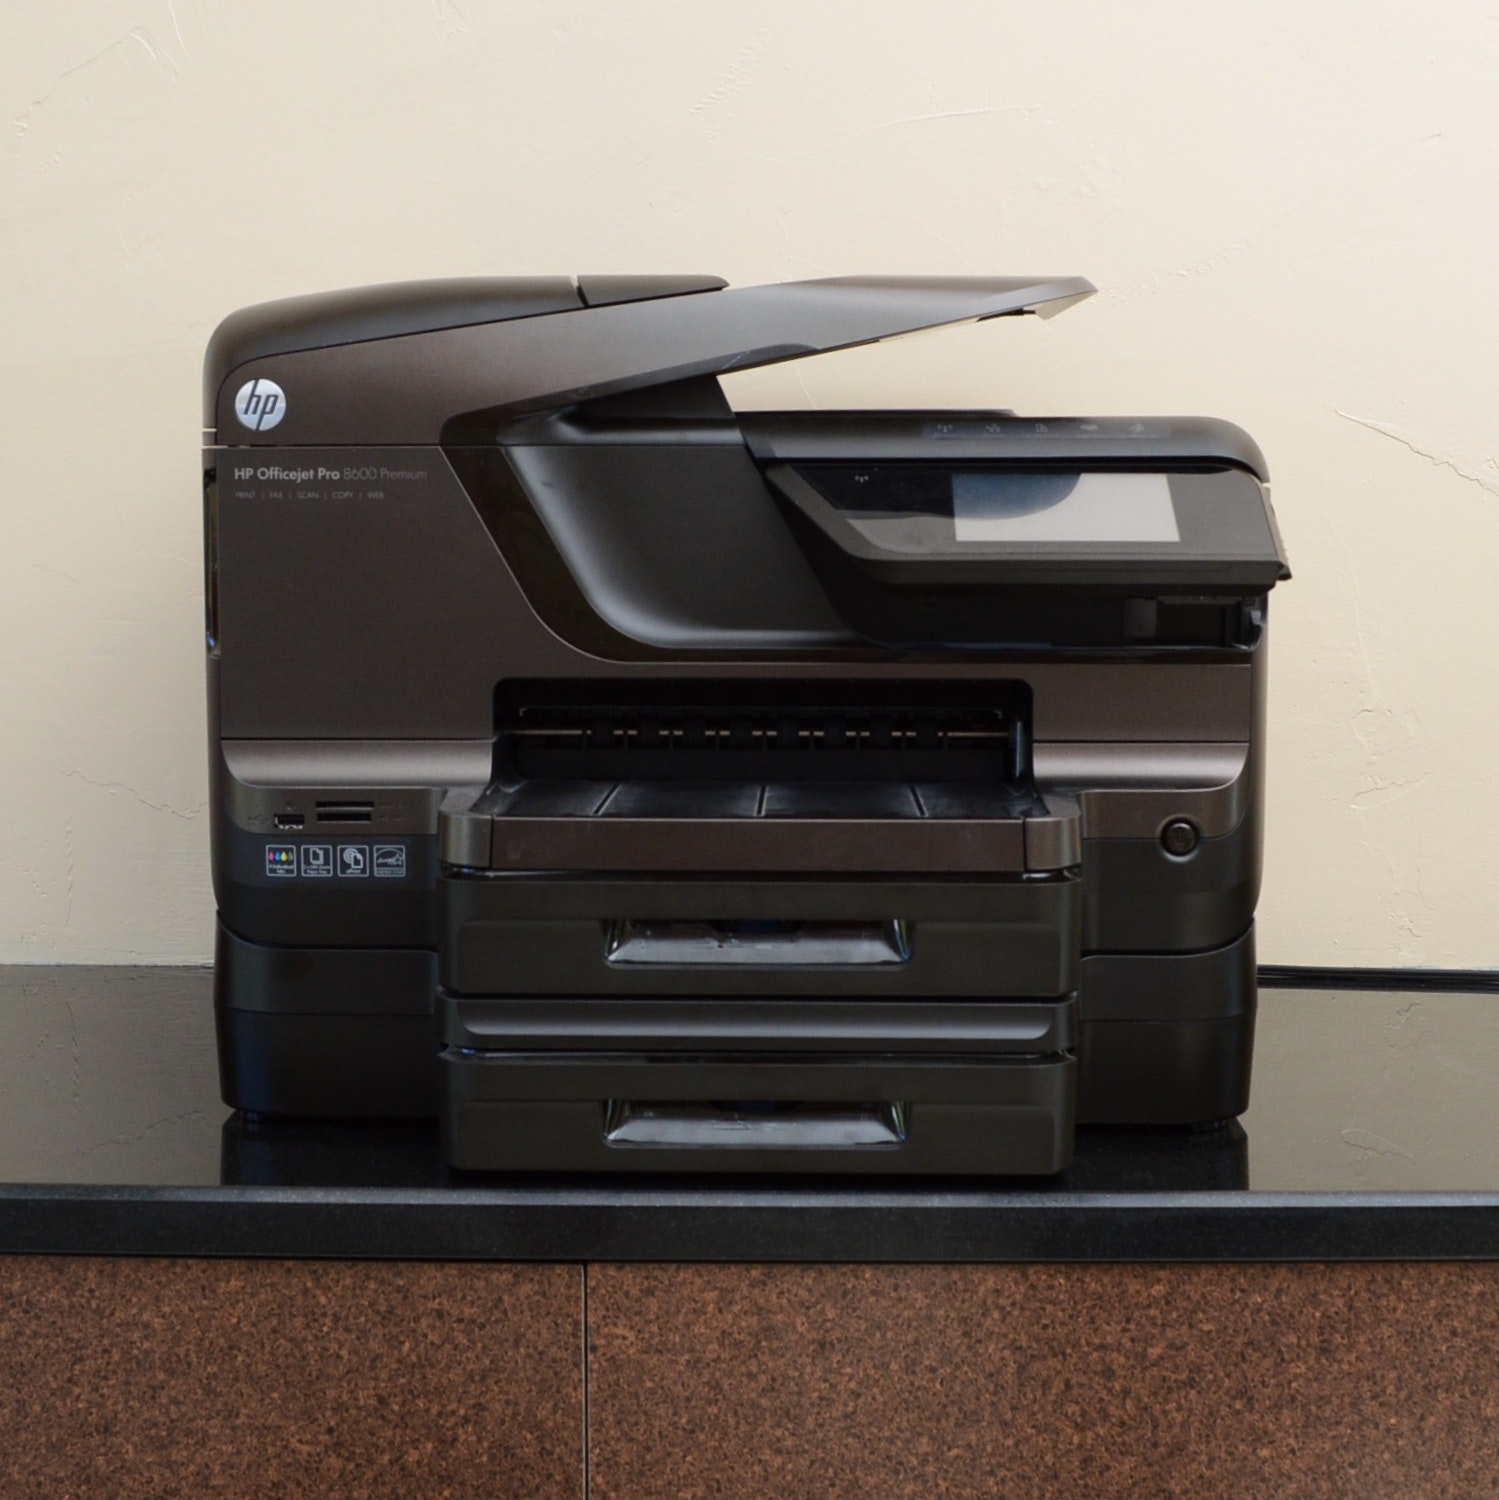 HP Officejet Pro 8600 Premium Four in One Printer